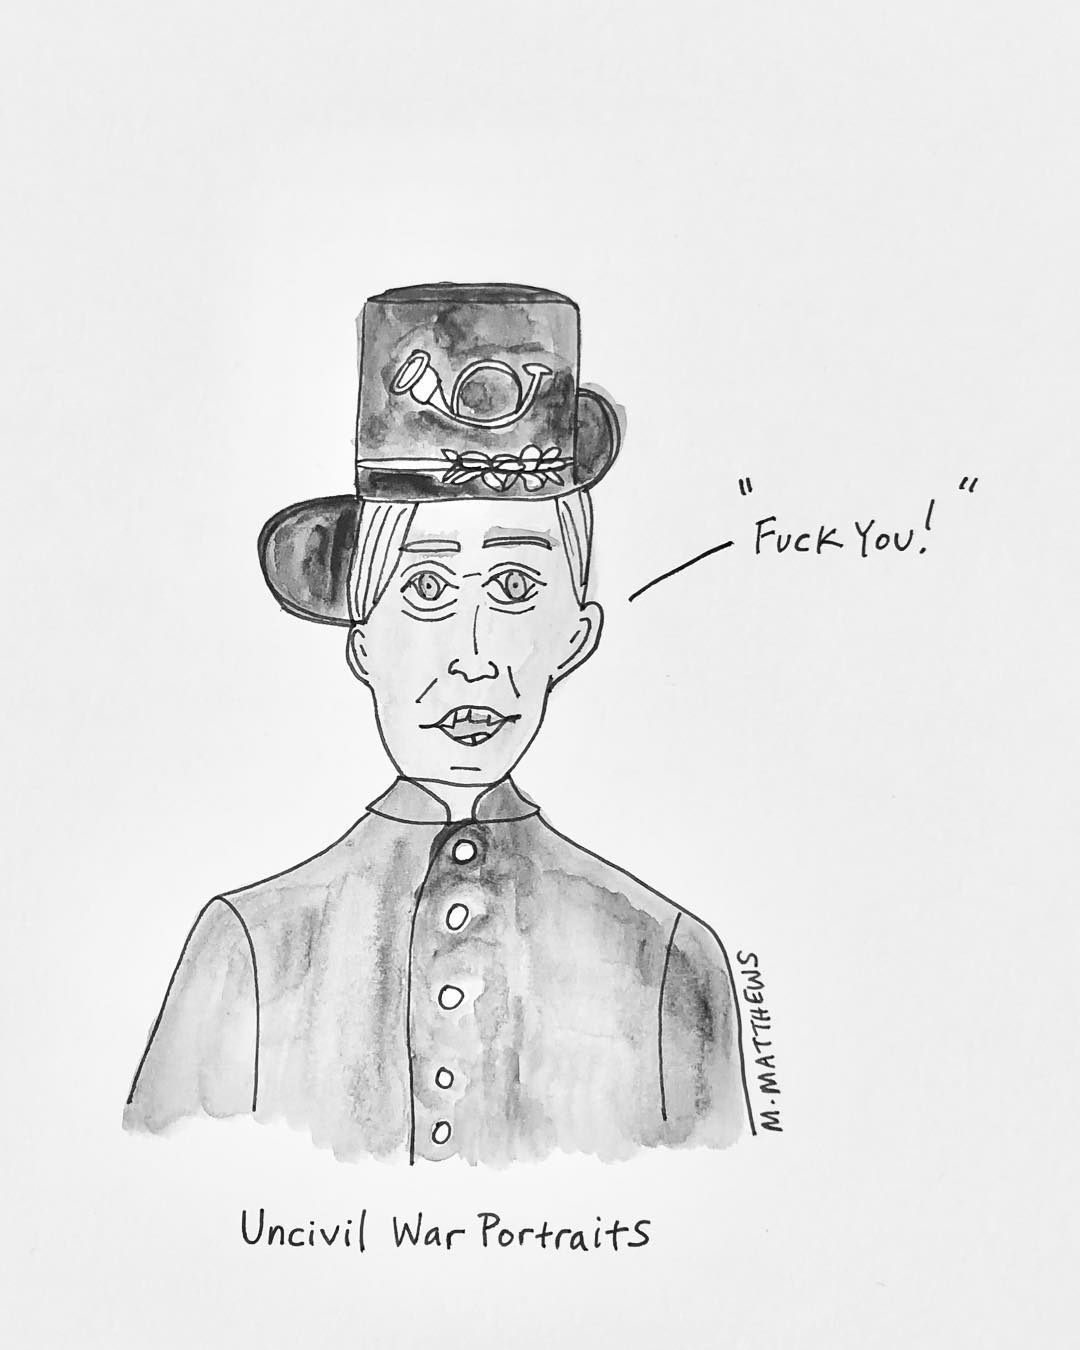 Uncivil War Portraits